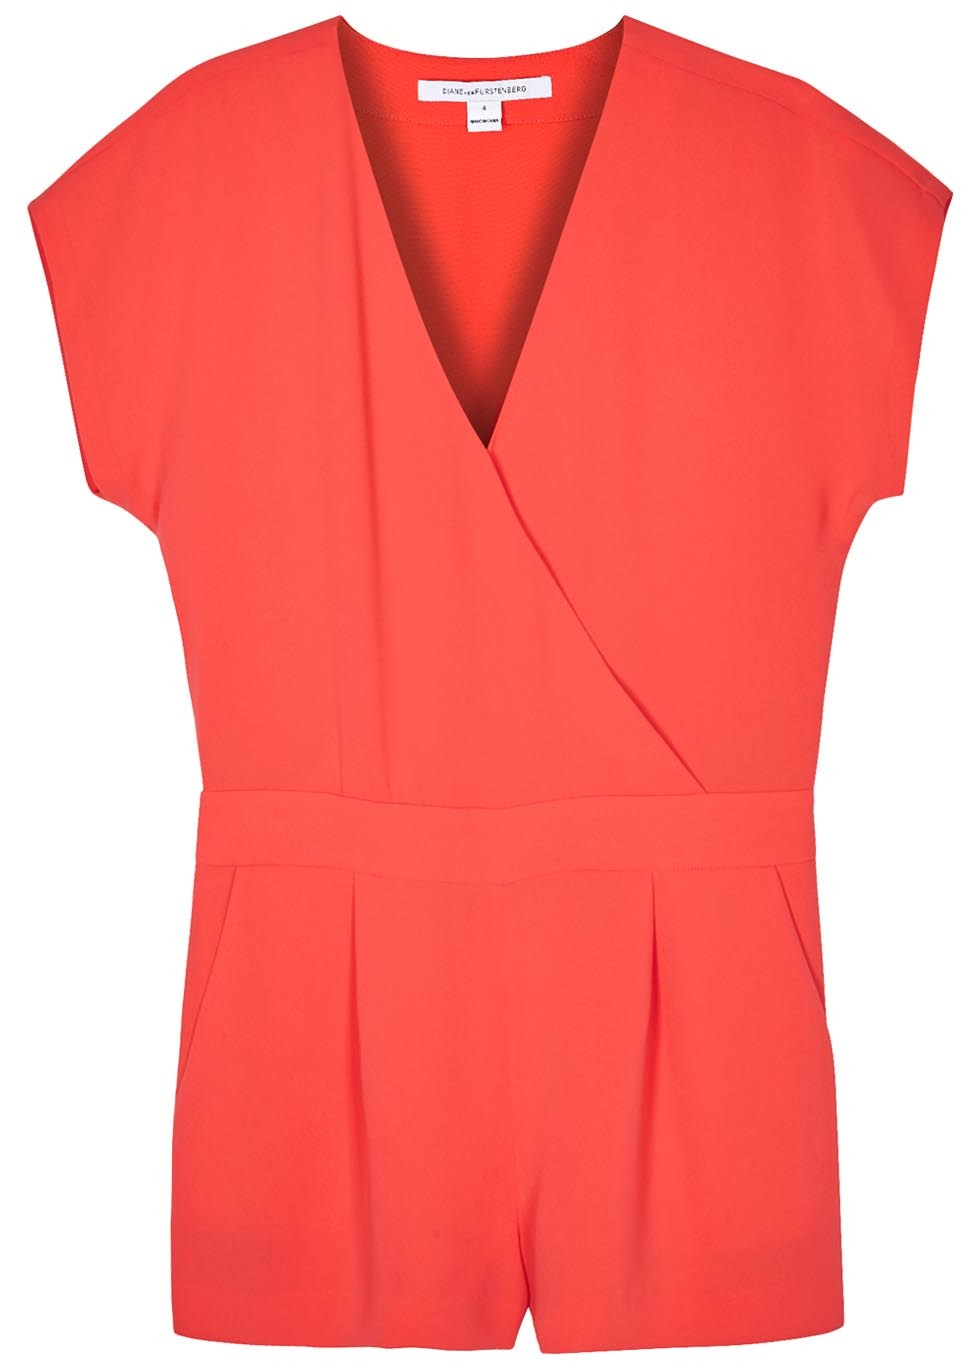 Emerson Coral Crepe Playsuit Size - neckline: v-neck; sleeve style: capped; pattern: plain; length: short shorts; predominant colour: coral; occasions: evening; fit: straight cut; fibres: polyester/polyamide - 100%; hip detail: adds bulk at the hips; waist detail: feature waist detail; sleeve length: short sleeve; texture group: crepes; style: playsuit; pattern type: fabric; season: s/s 2016; wardrobe: event